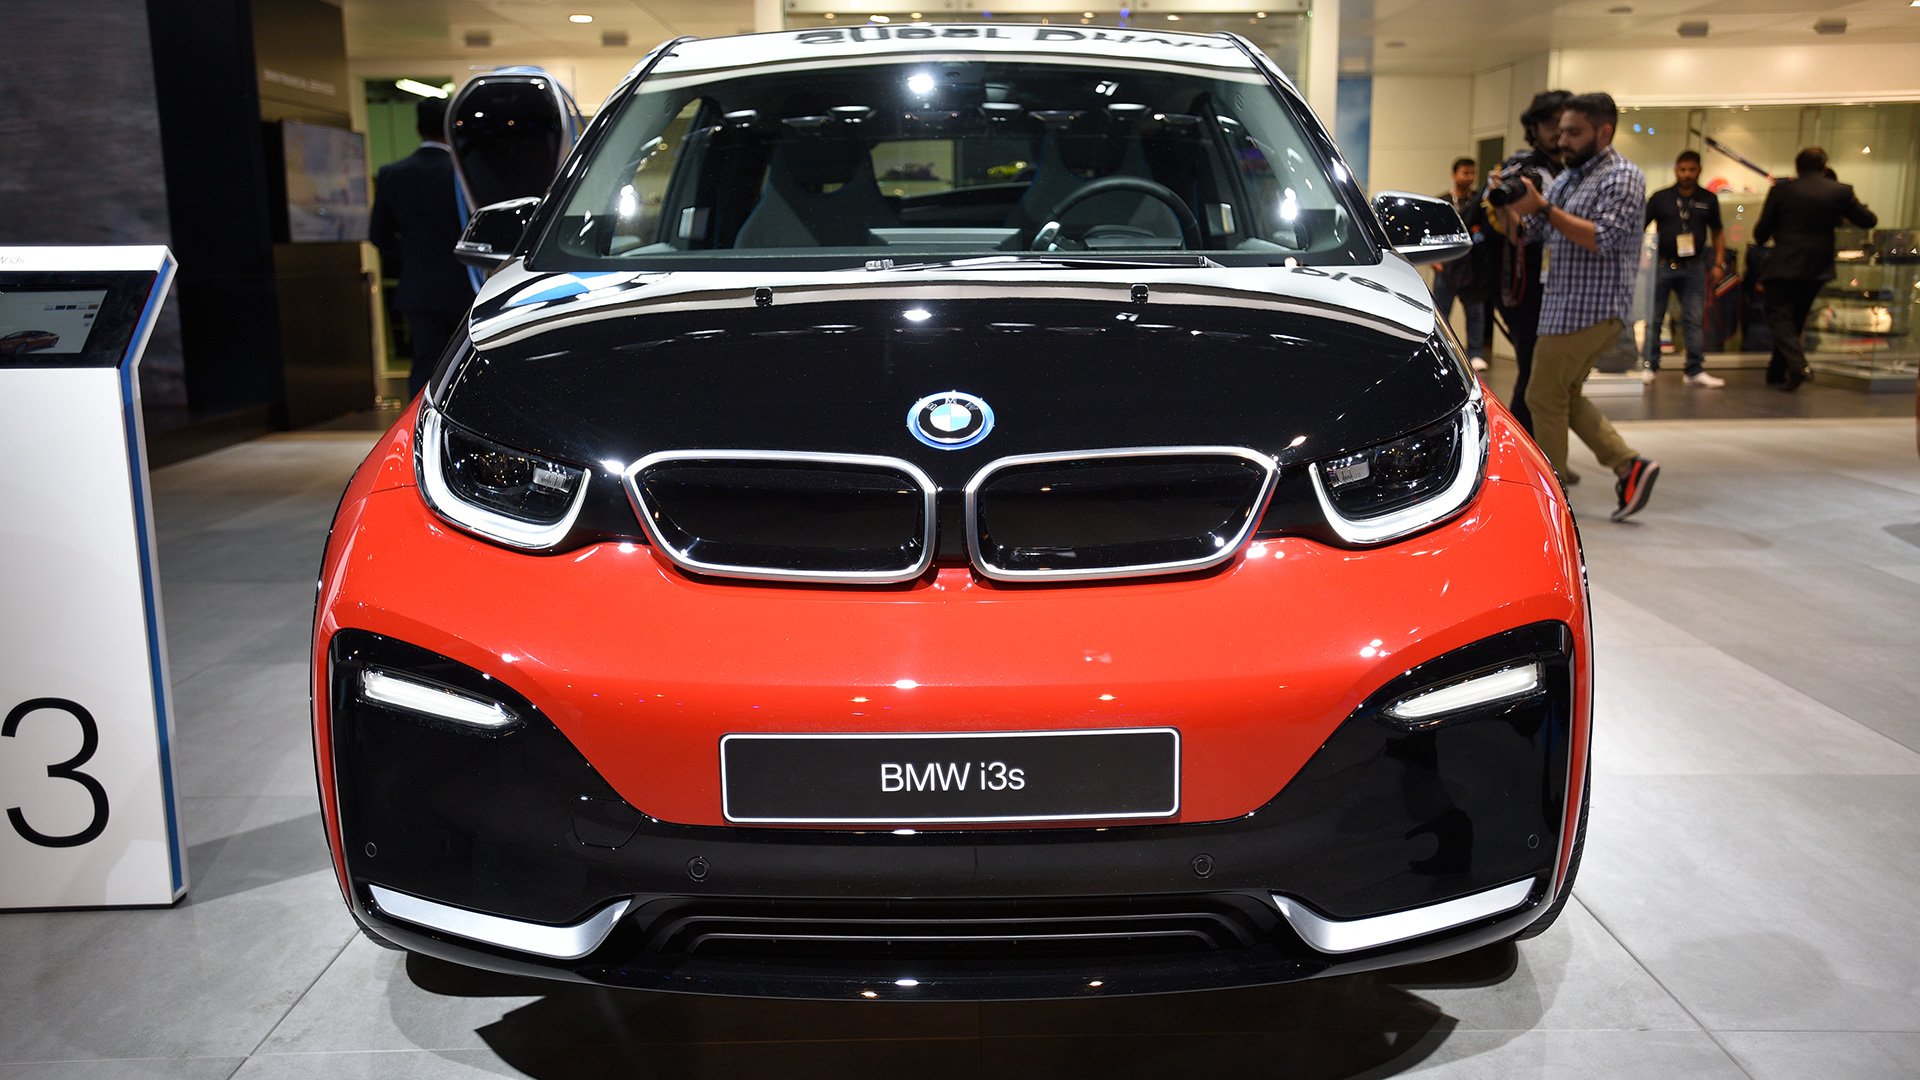 Bmw I3s 2018 Price Mileage Reviews Specification